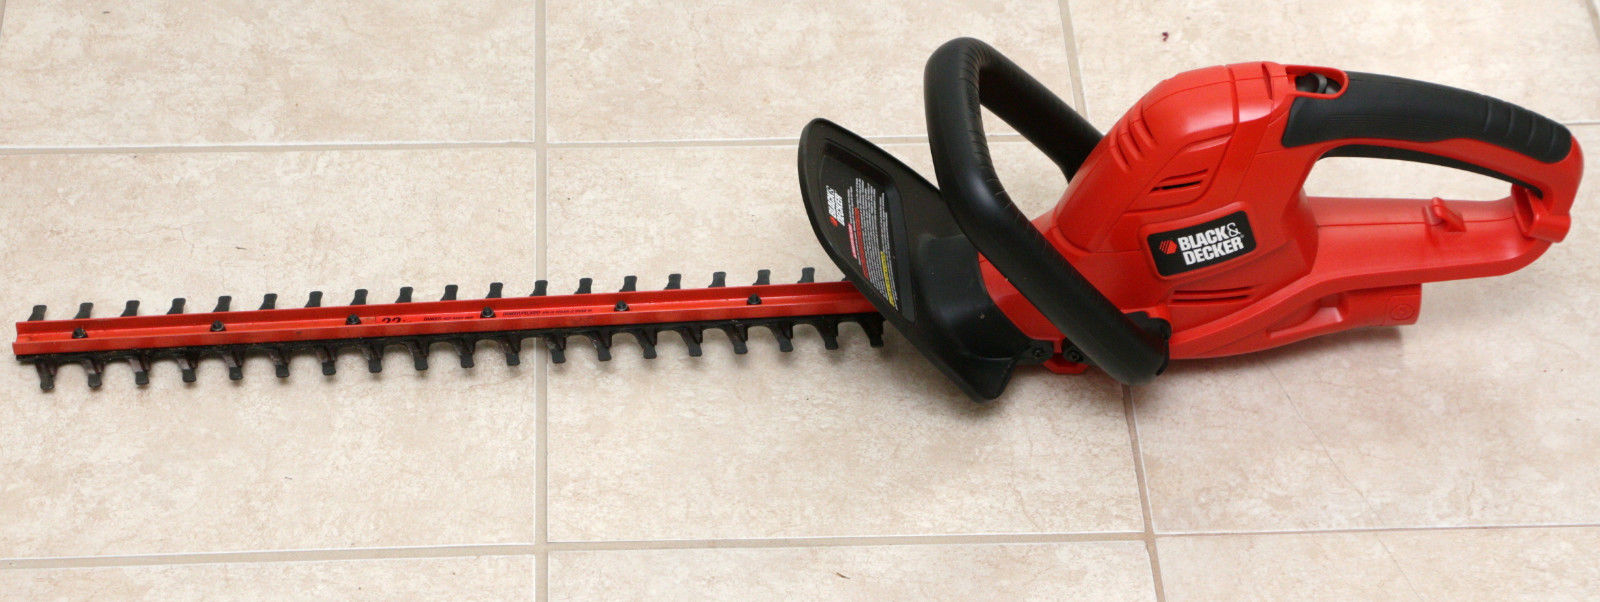 Black & Decker 22 inch Electric Corded Hedge Trimmer